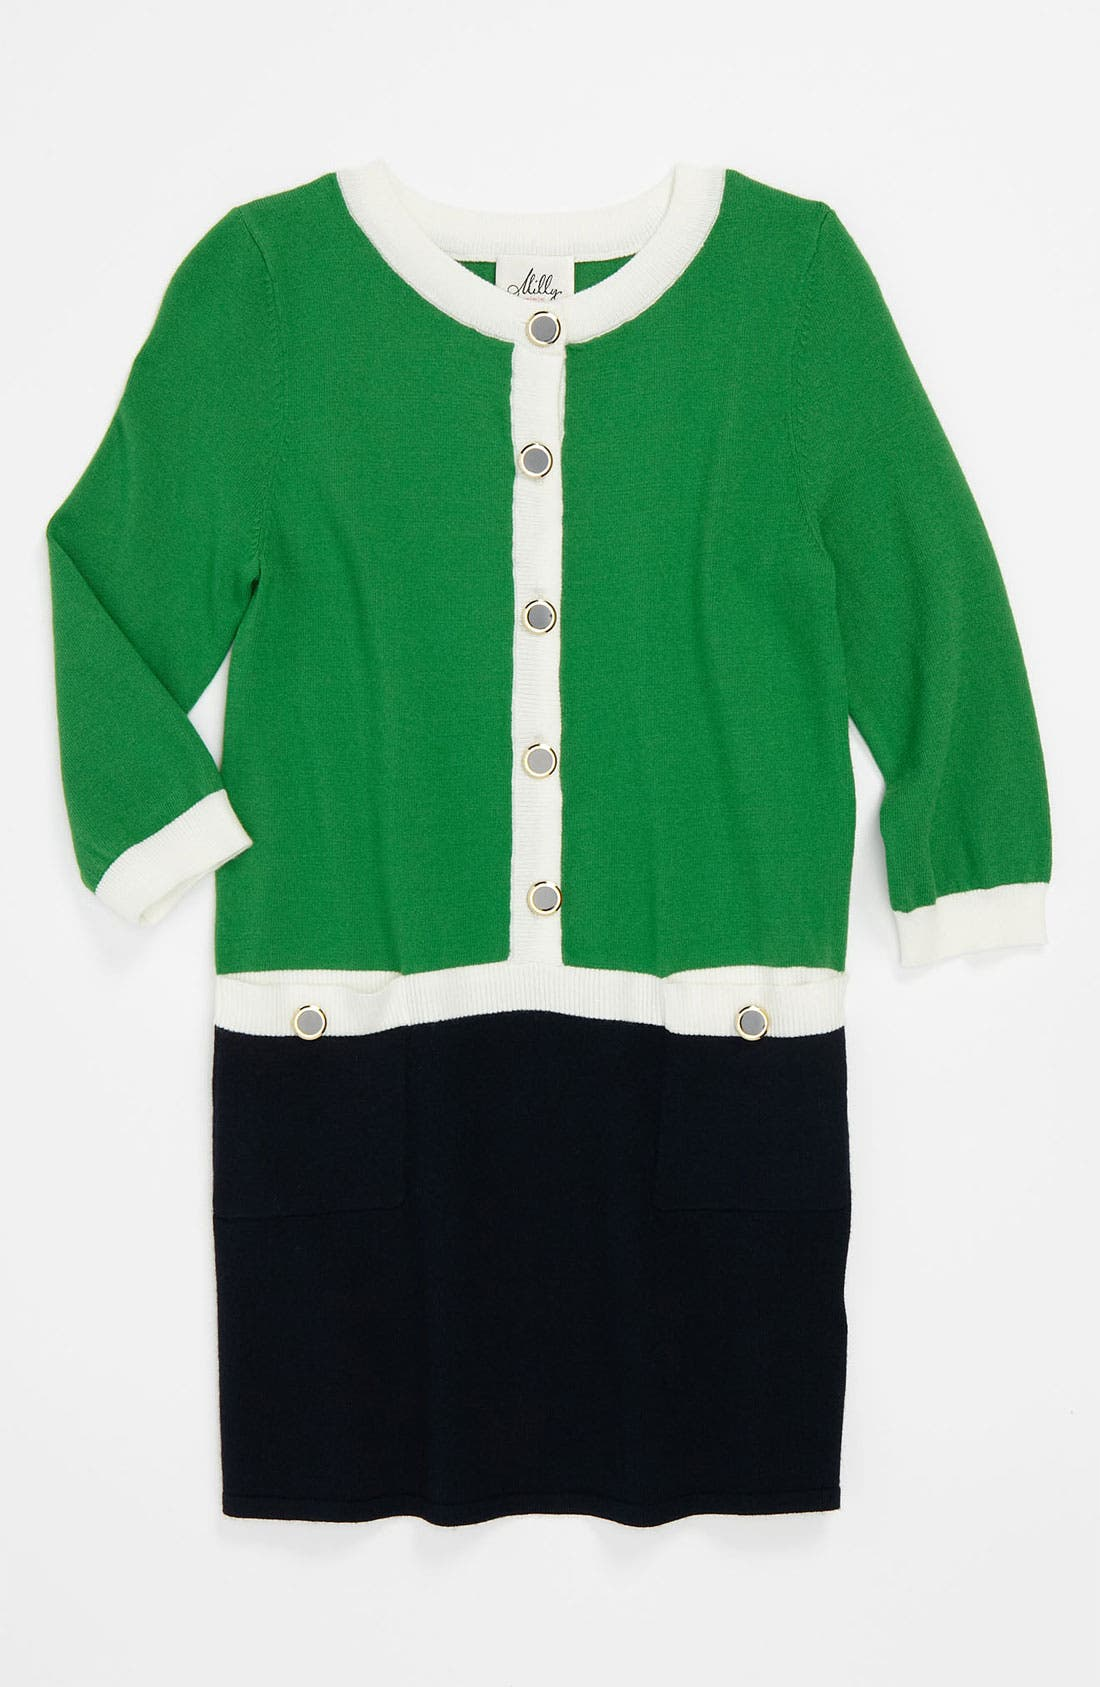 Main Image - Milly Minis 'Catie' Combo Knit Dress (Big Girls)